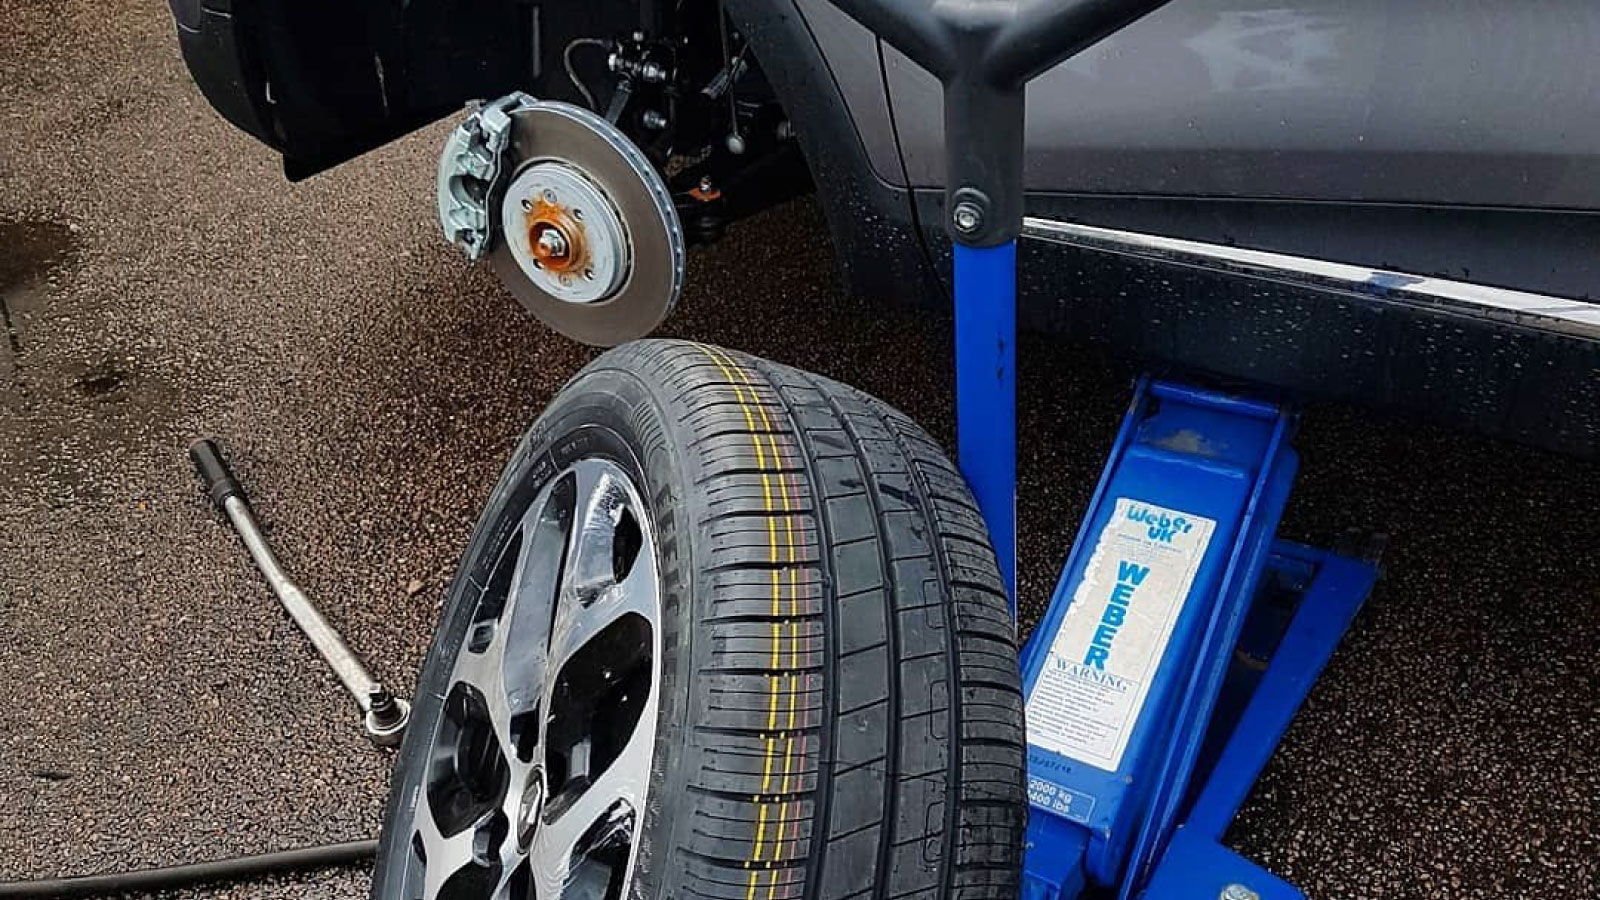 Car jack used to replace punctured tyre safely and quickly